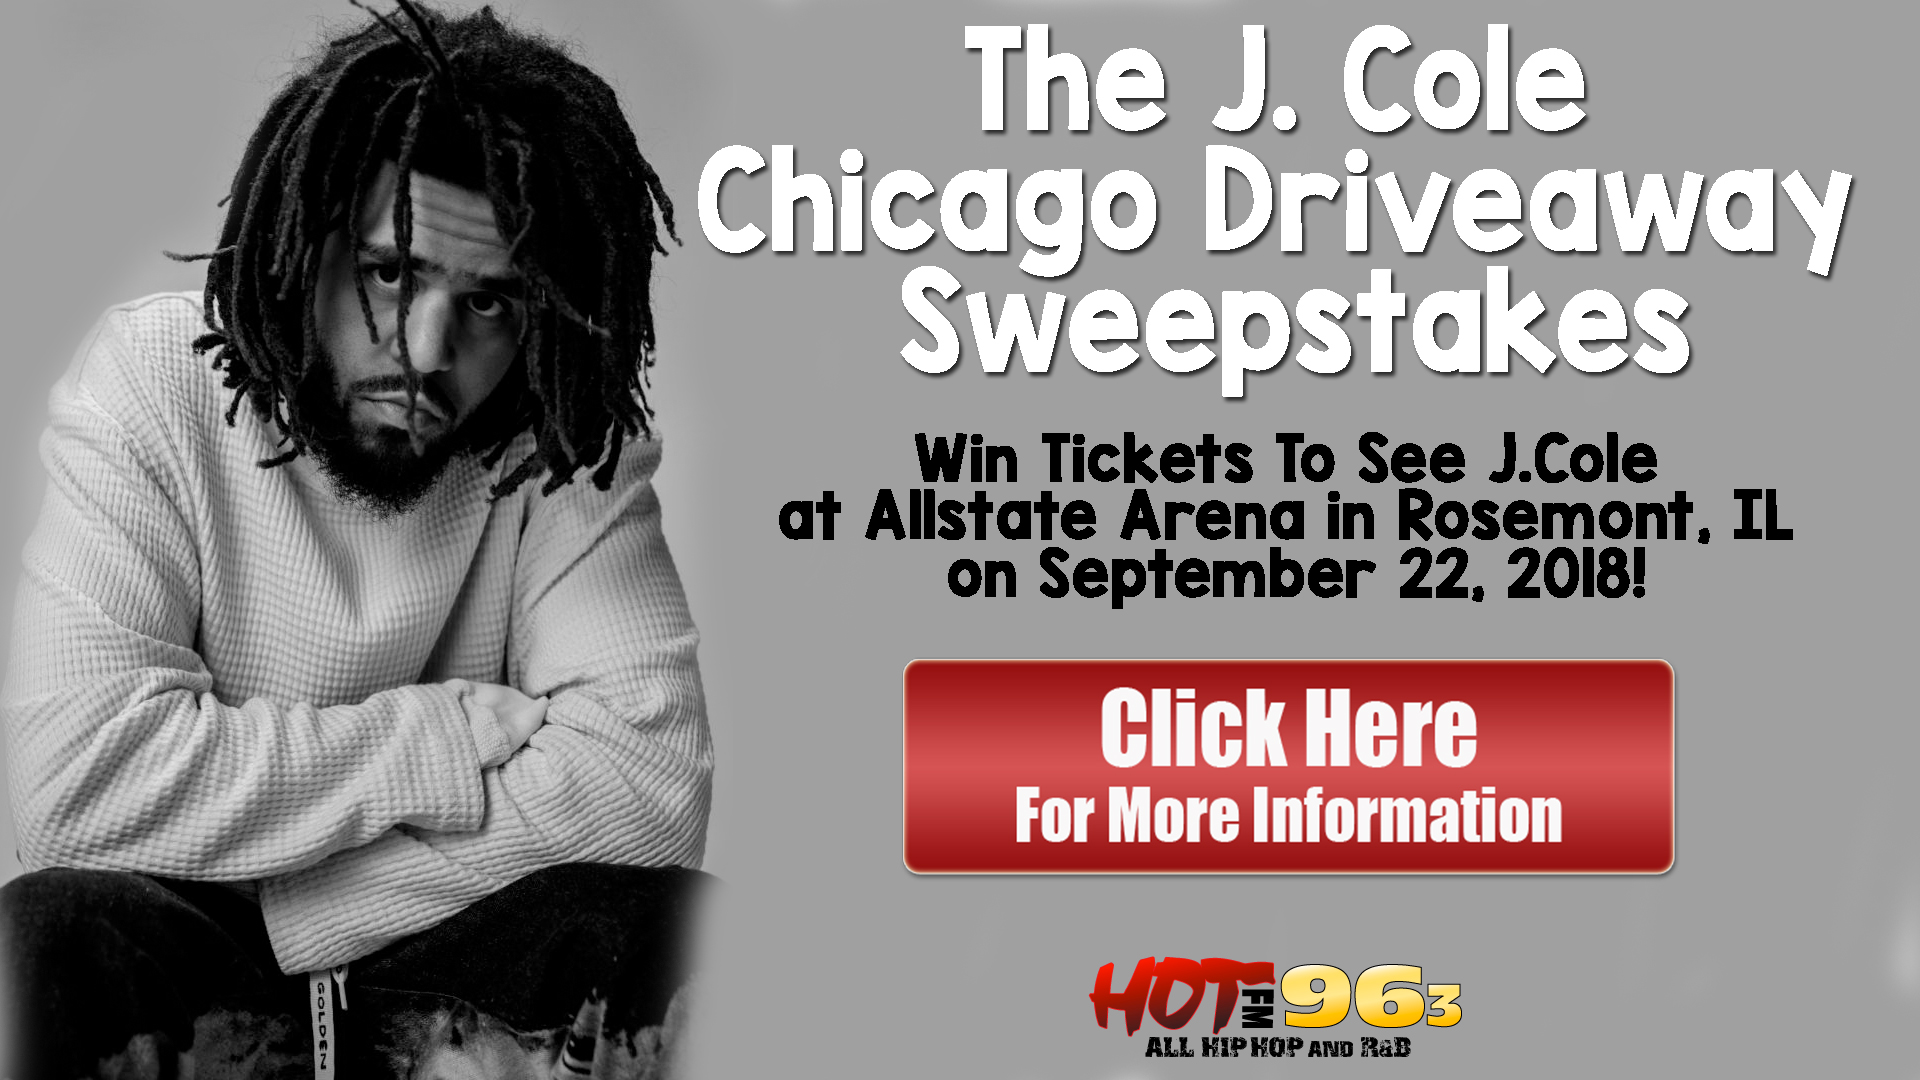 The J. Cole Chicago Driveaway Sweepstakes